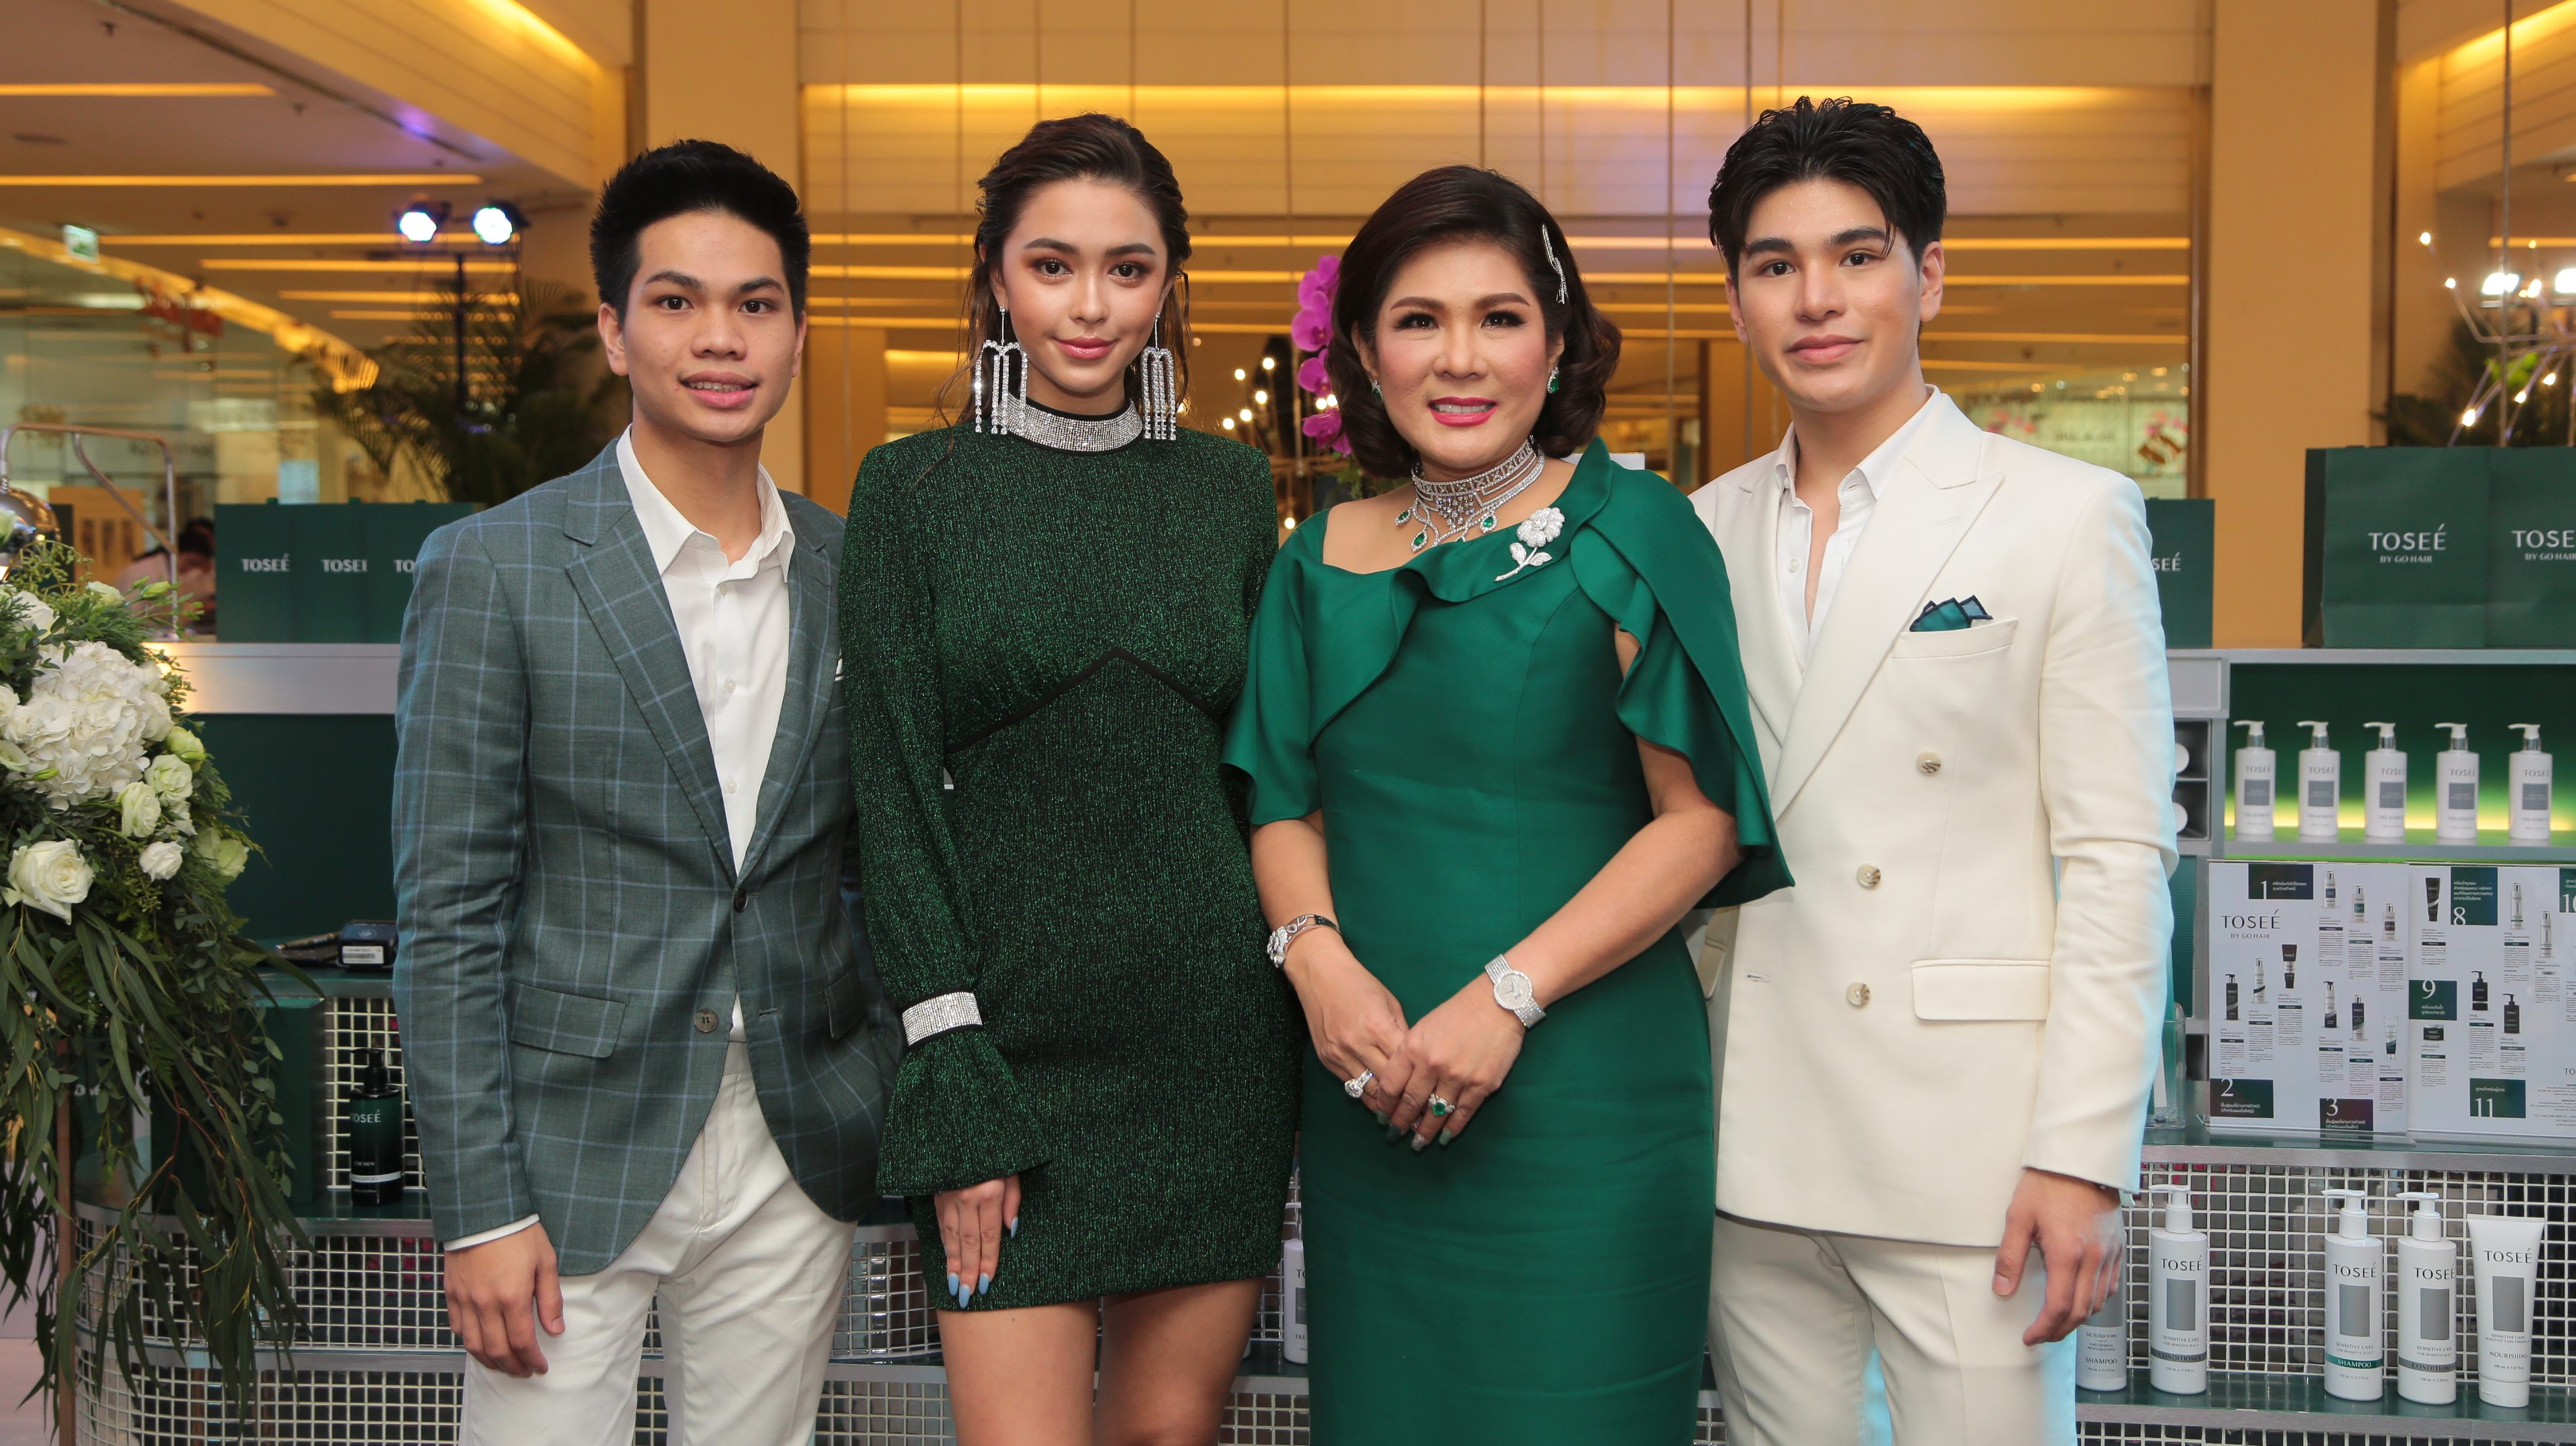 Go hair TOSEE' Tosee' by Go hair แพทริเซีย กู๊ด